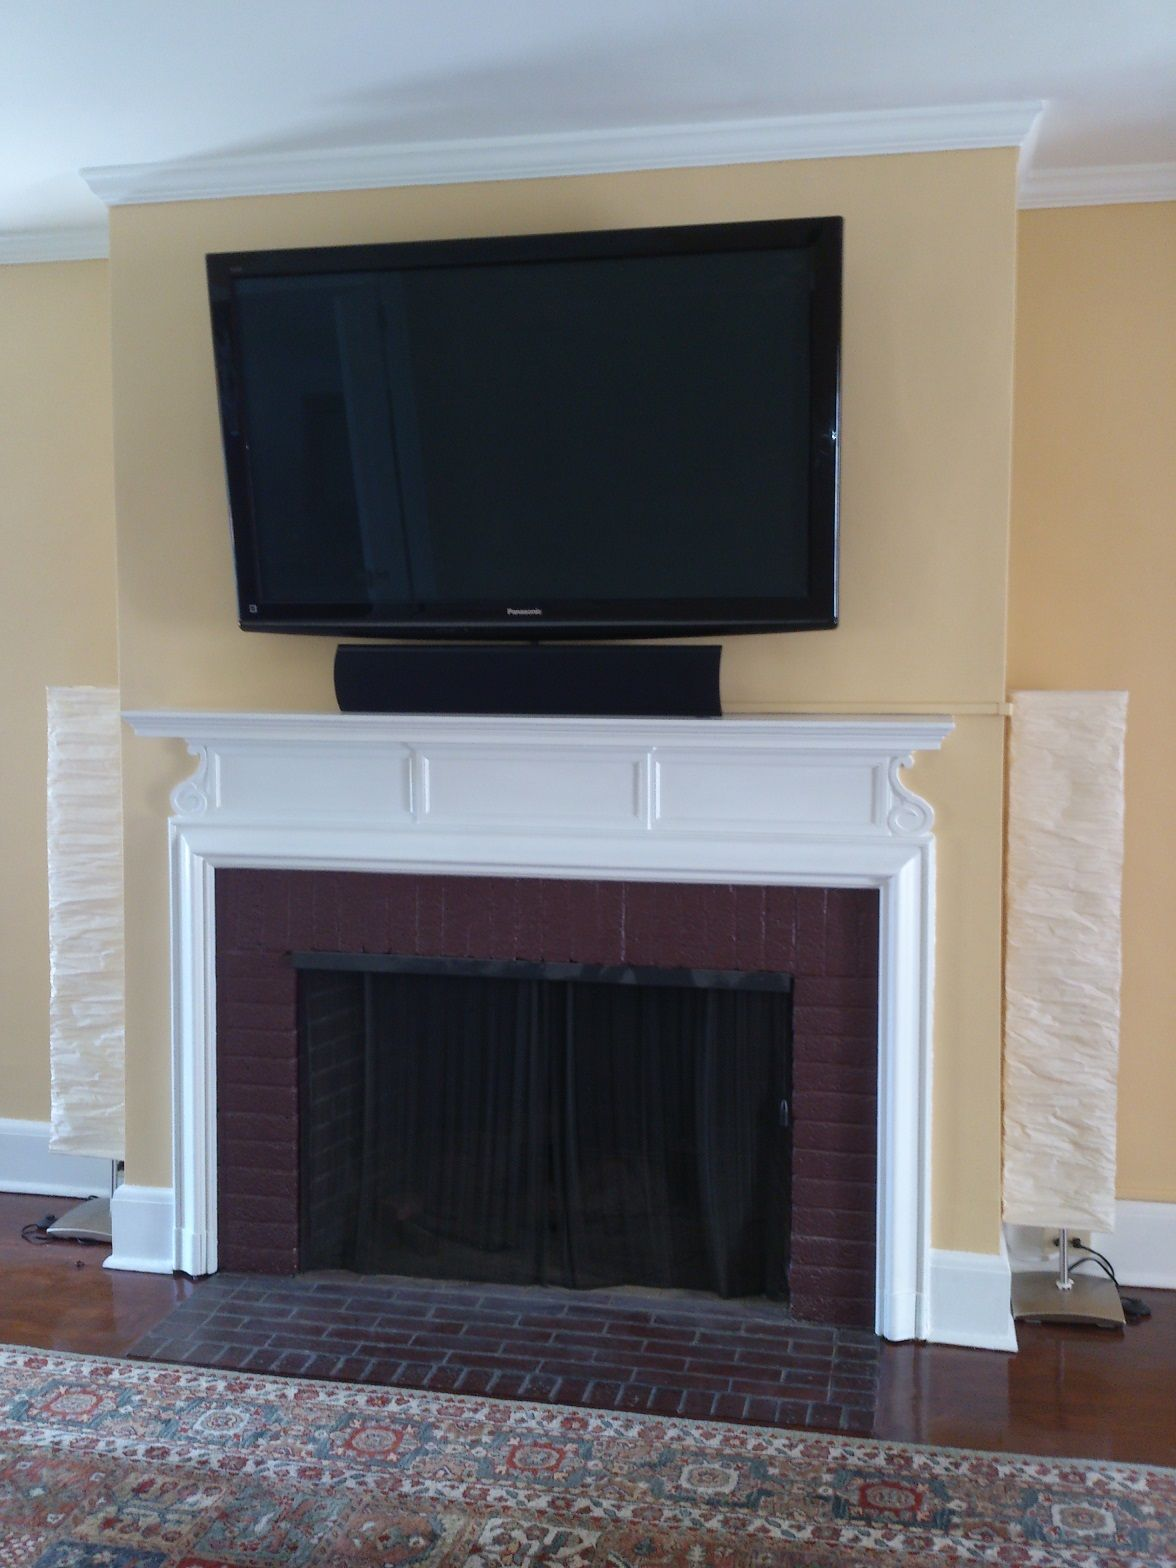 How Do You Mount A Tv Above A Fireplace On A Brick Wall Without